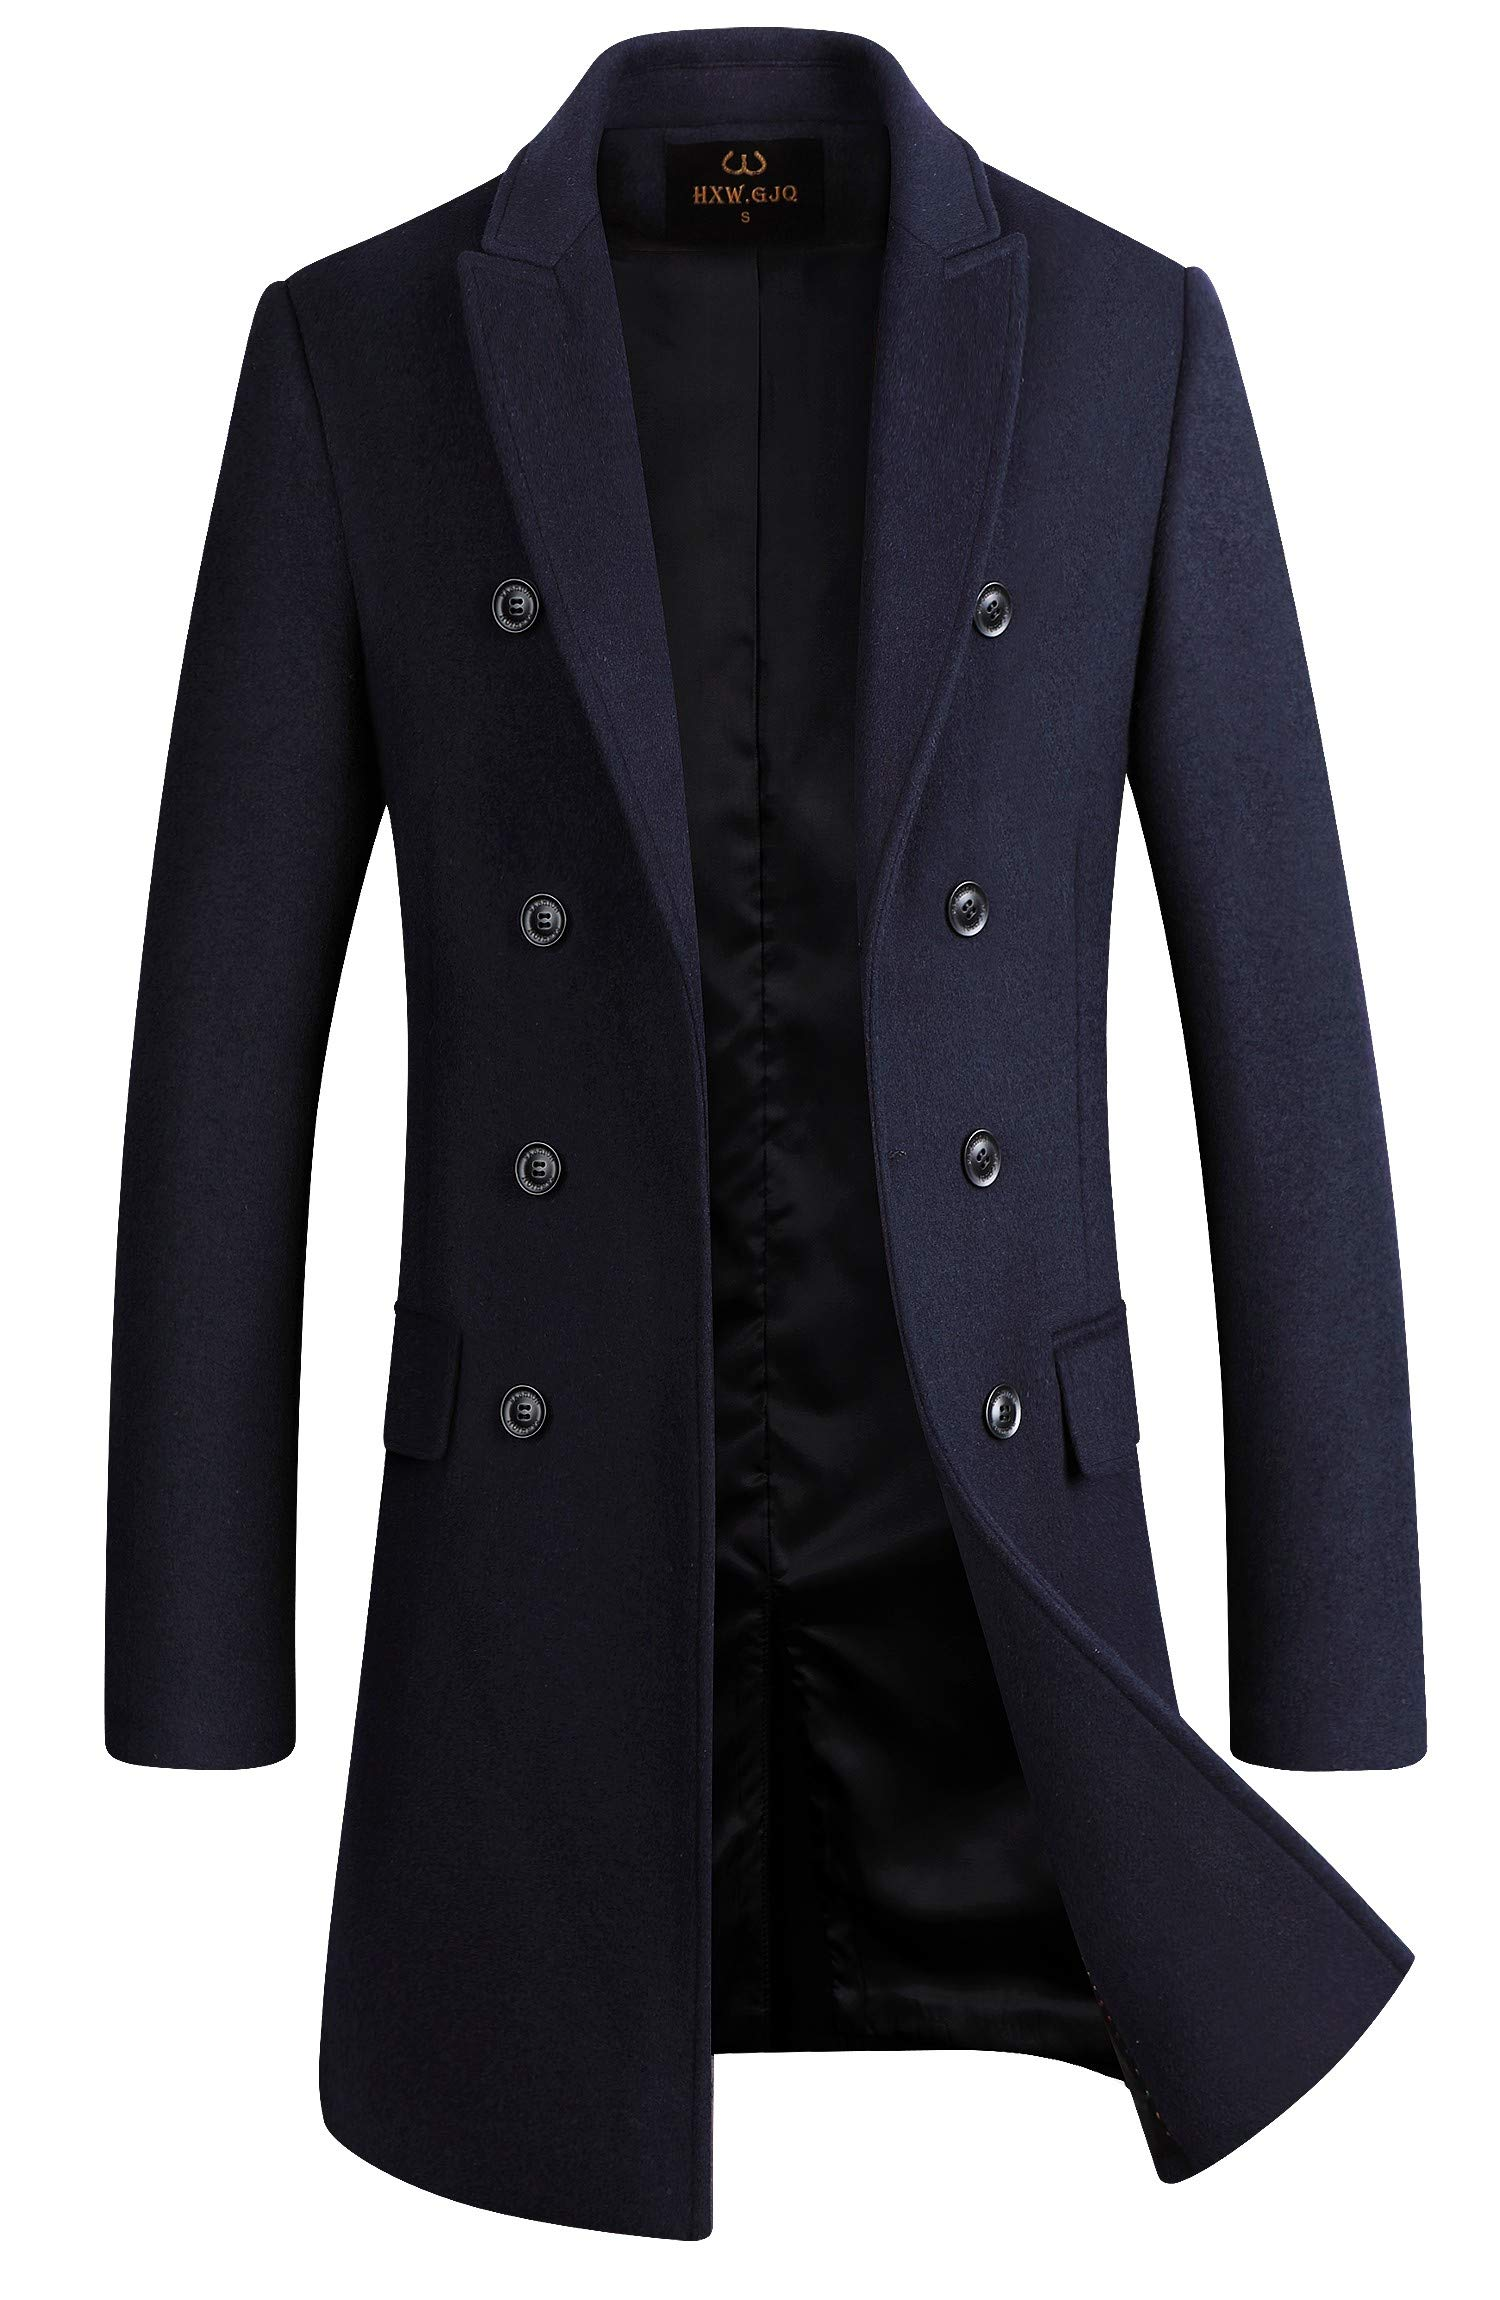 Men's Premium Wool Blend Double Breasted Long Pea Coat (Navy Blue, XX-Large) by HXW.GJQ